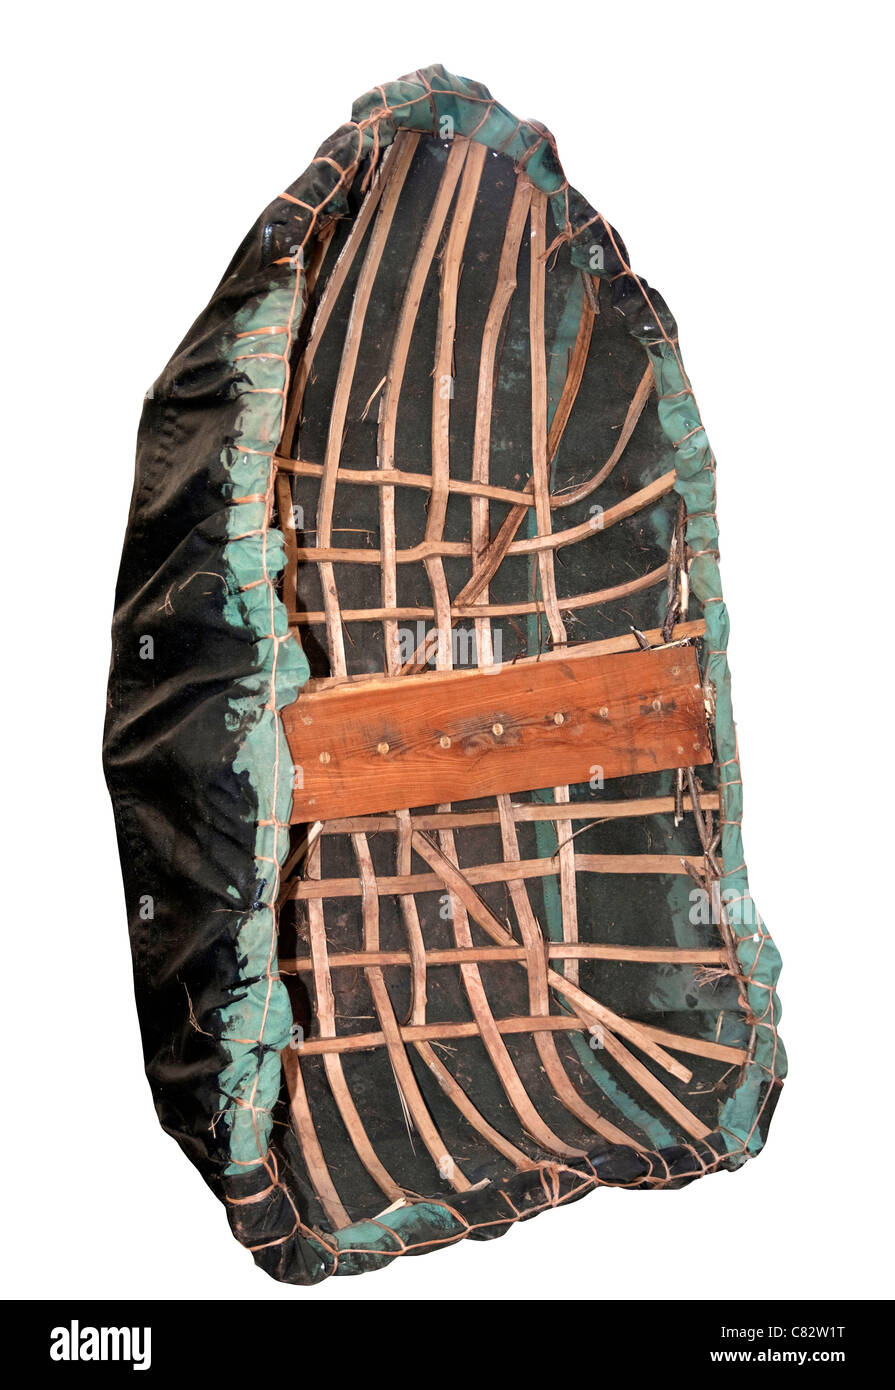 Coracle - a Welsh fishing boat, originally these were made from skins but nowadays synthetic coverings are more - Stock Image